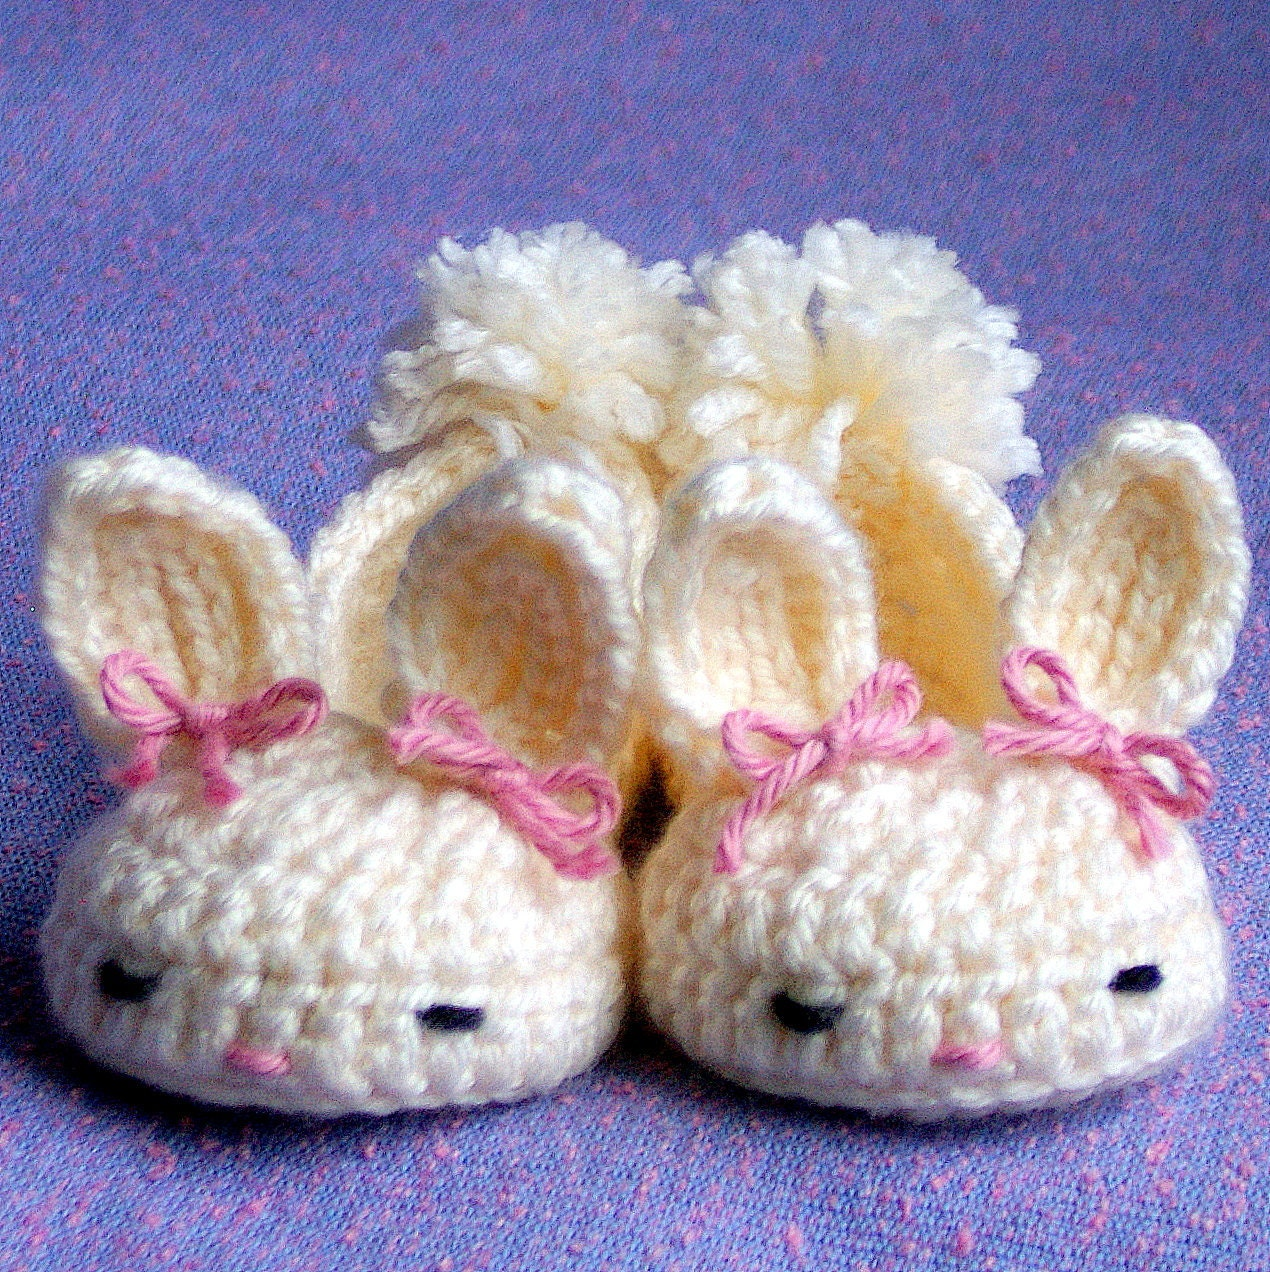 Ravelry: Fluffy Bunny Slippers pattern by Shannon Murphree